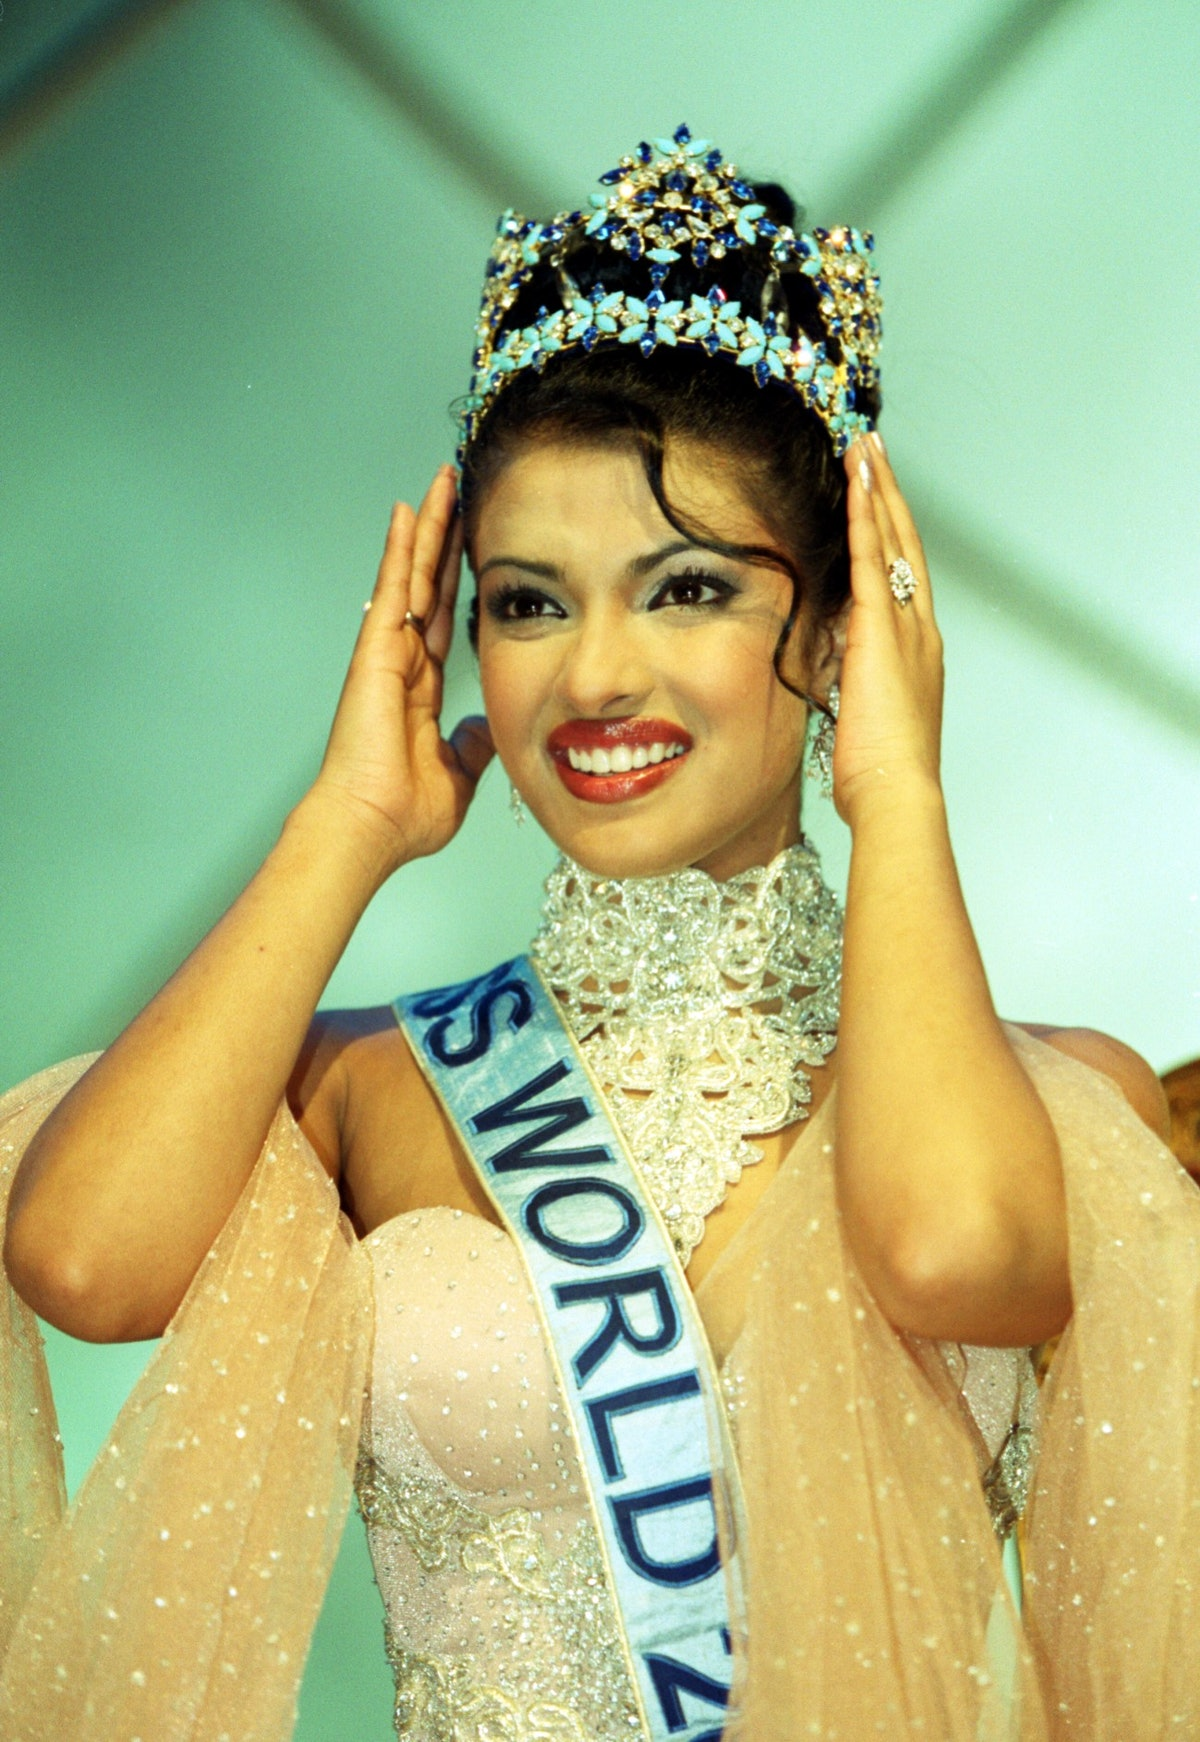 The winner of Miss World 2000, Miss India, Priyanka Chopra, 18, during the Miss World contest at The...